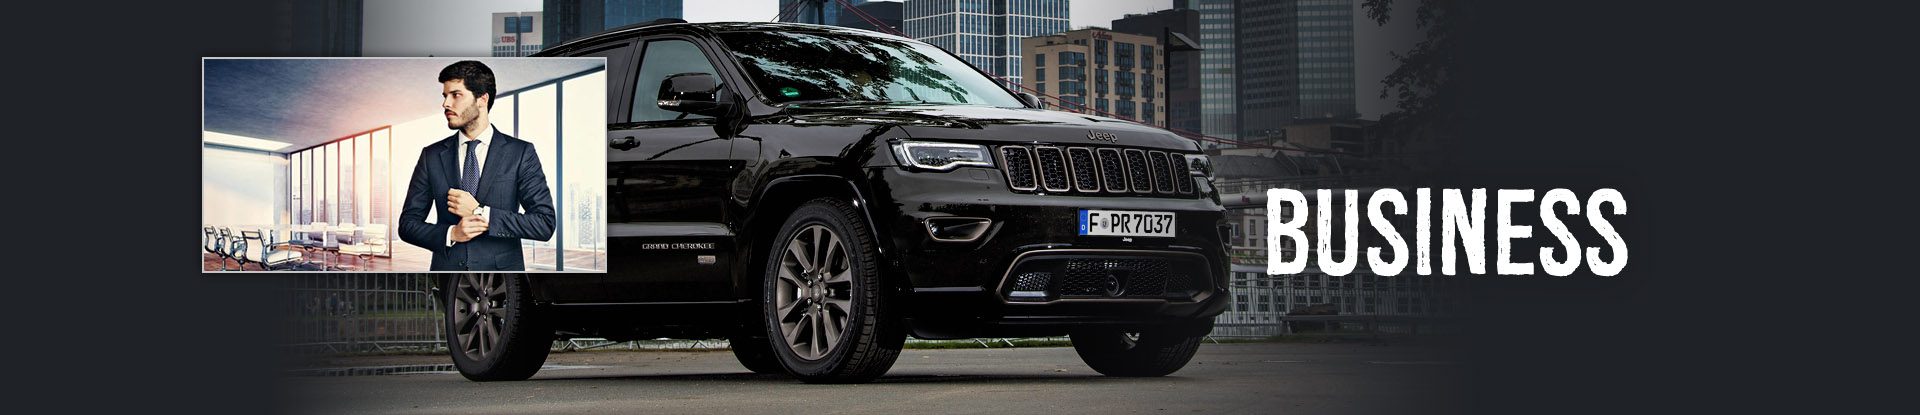 JEEP Business bei Preckel